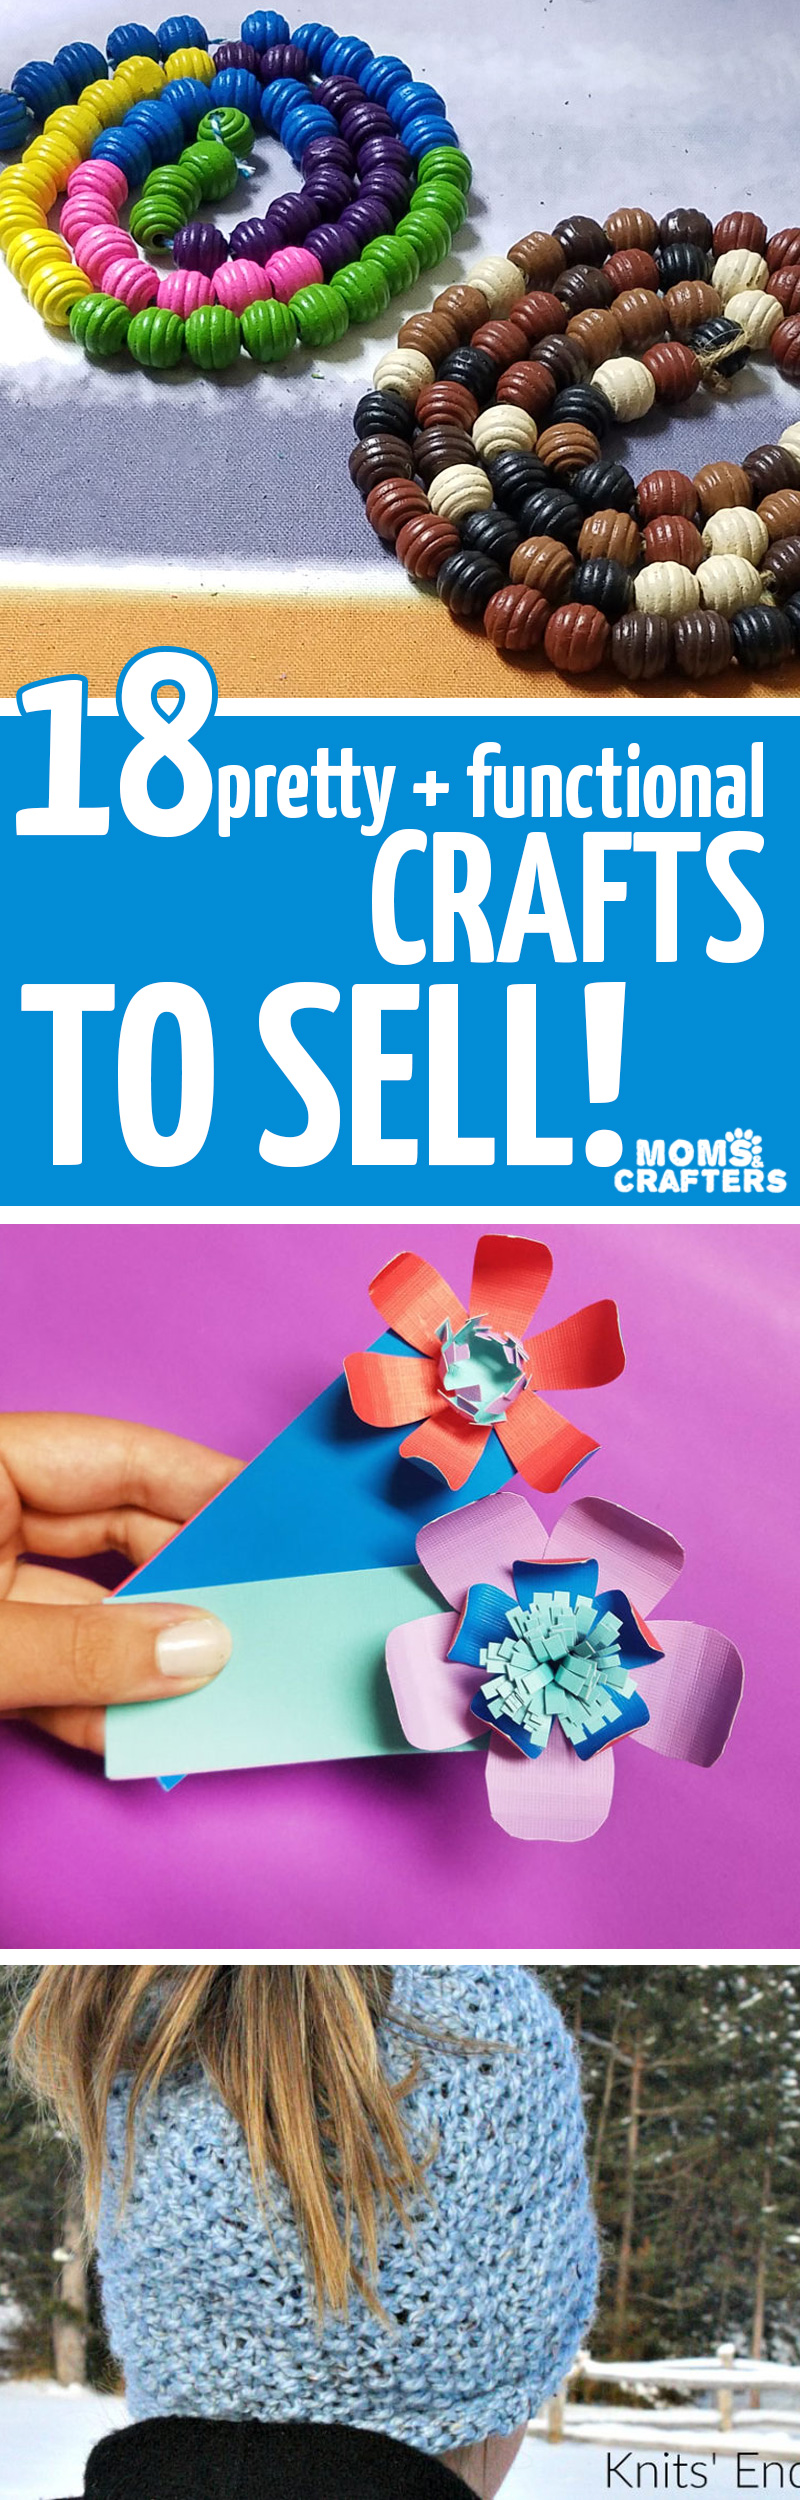 91 crafts to make and sell from home office desk hacks